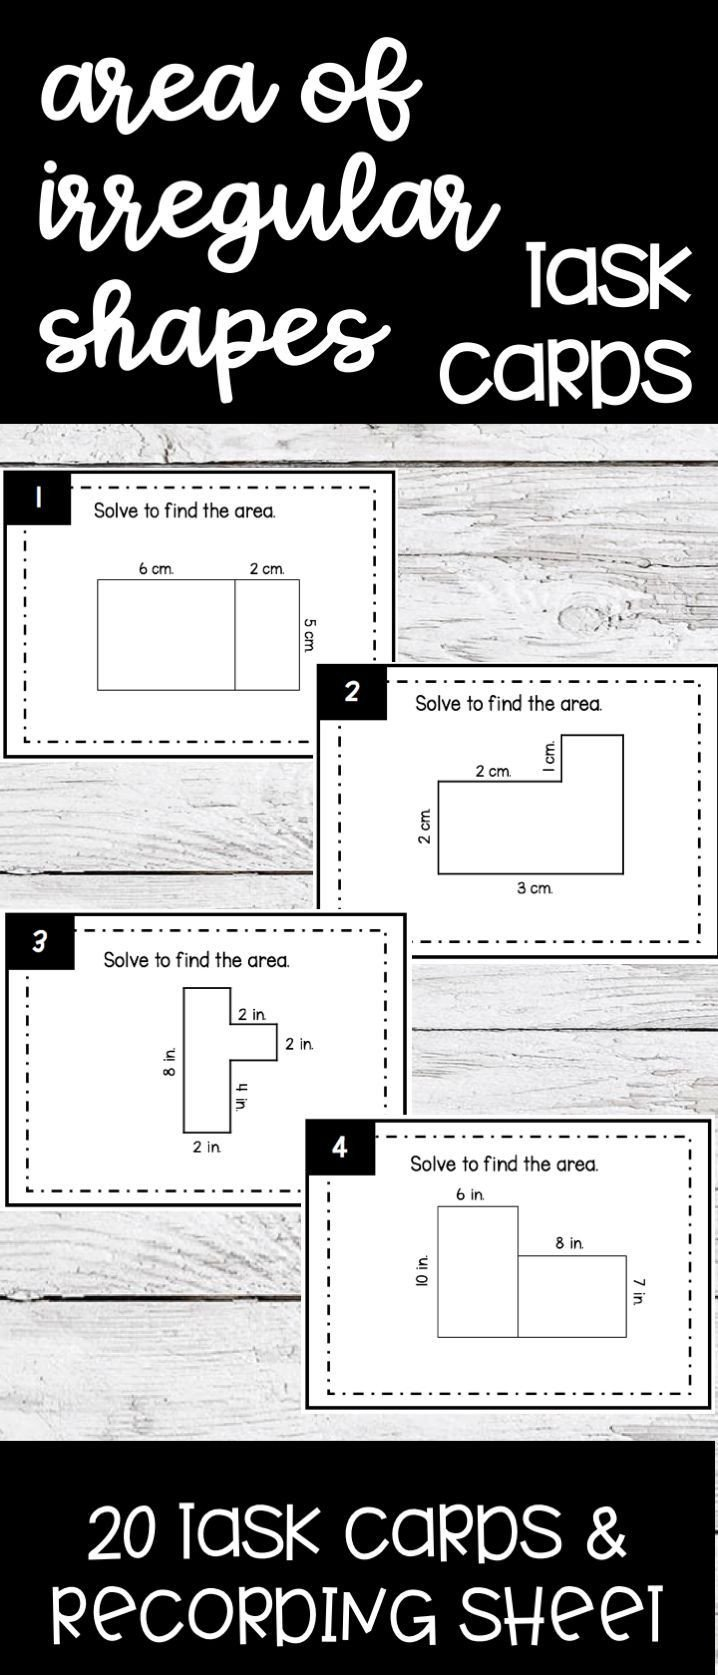 Area Irregular Shapes Worksheet area Of Irregular Shapes Task Cards